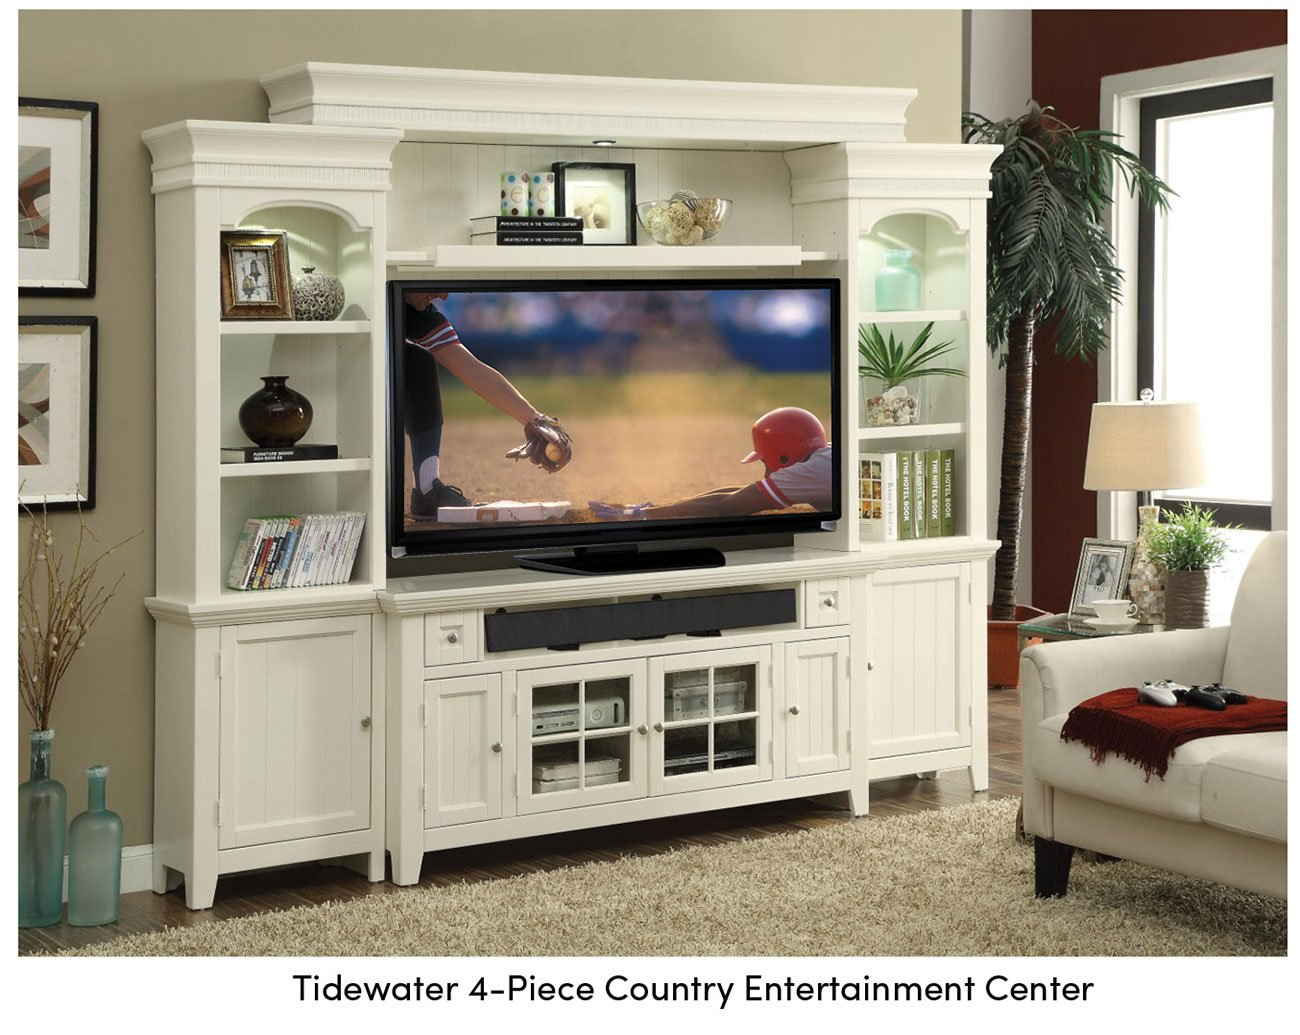 Tide-water-entertainment-center